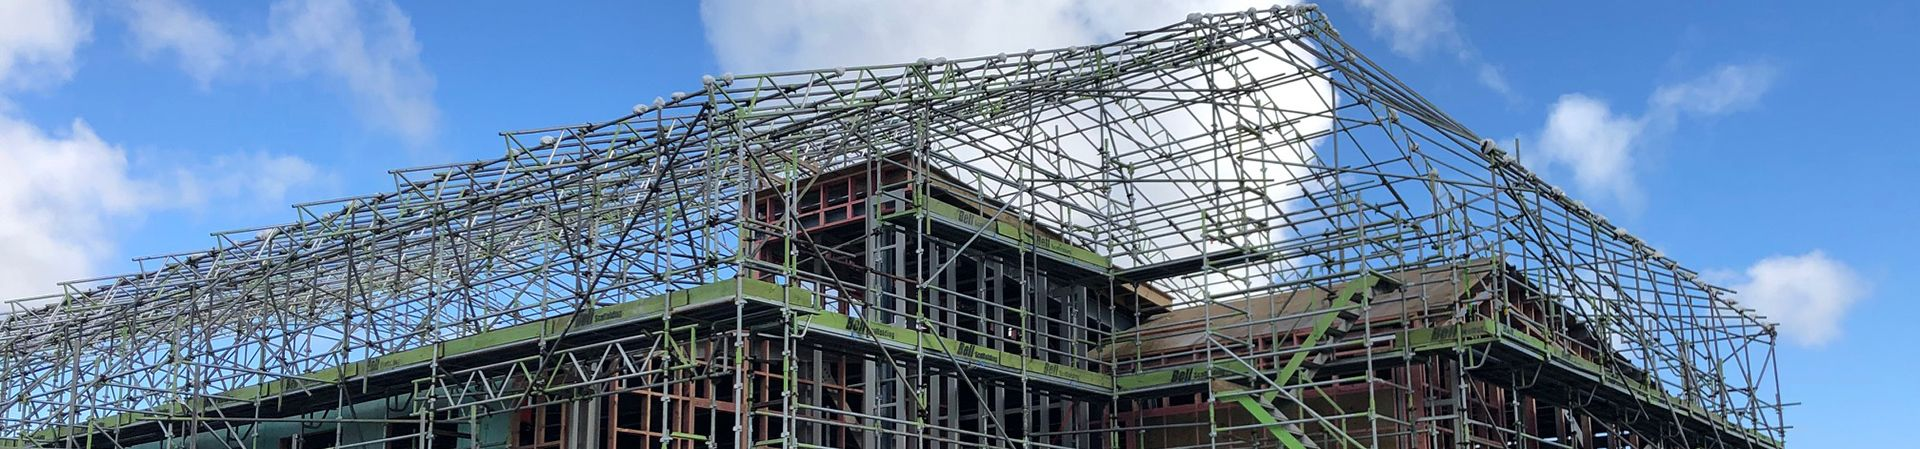 Otago Dental Clinic - Bell Scaffolding - High-end Commercial and Light Industrial Scaffolders